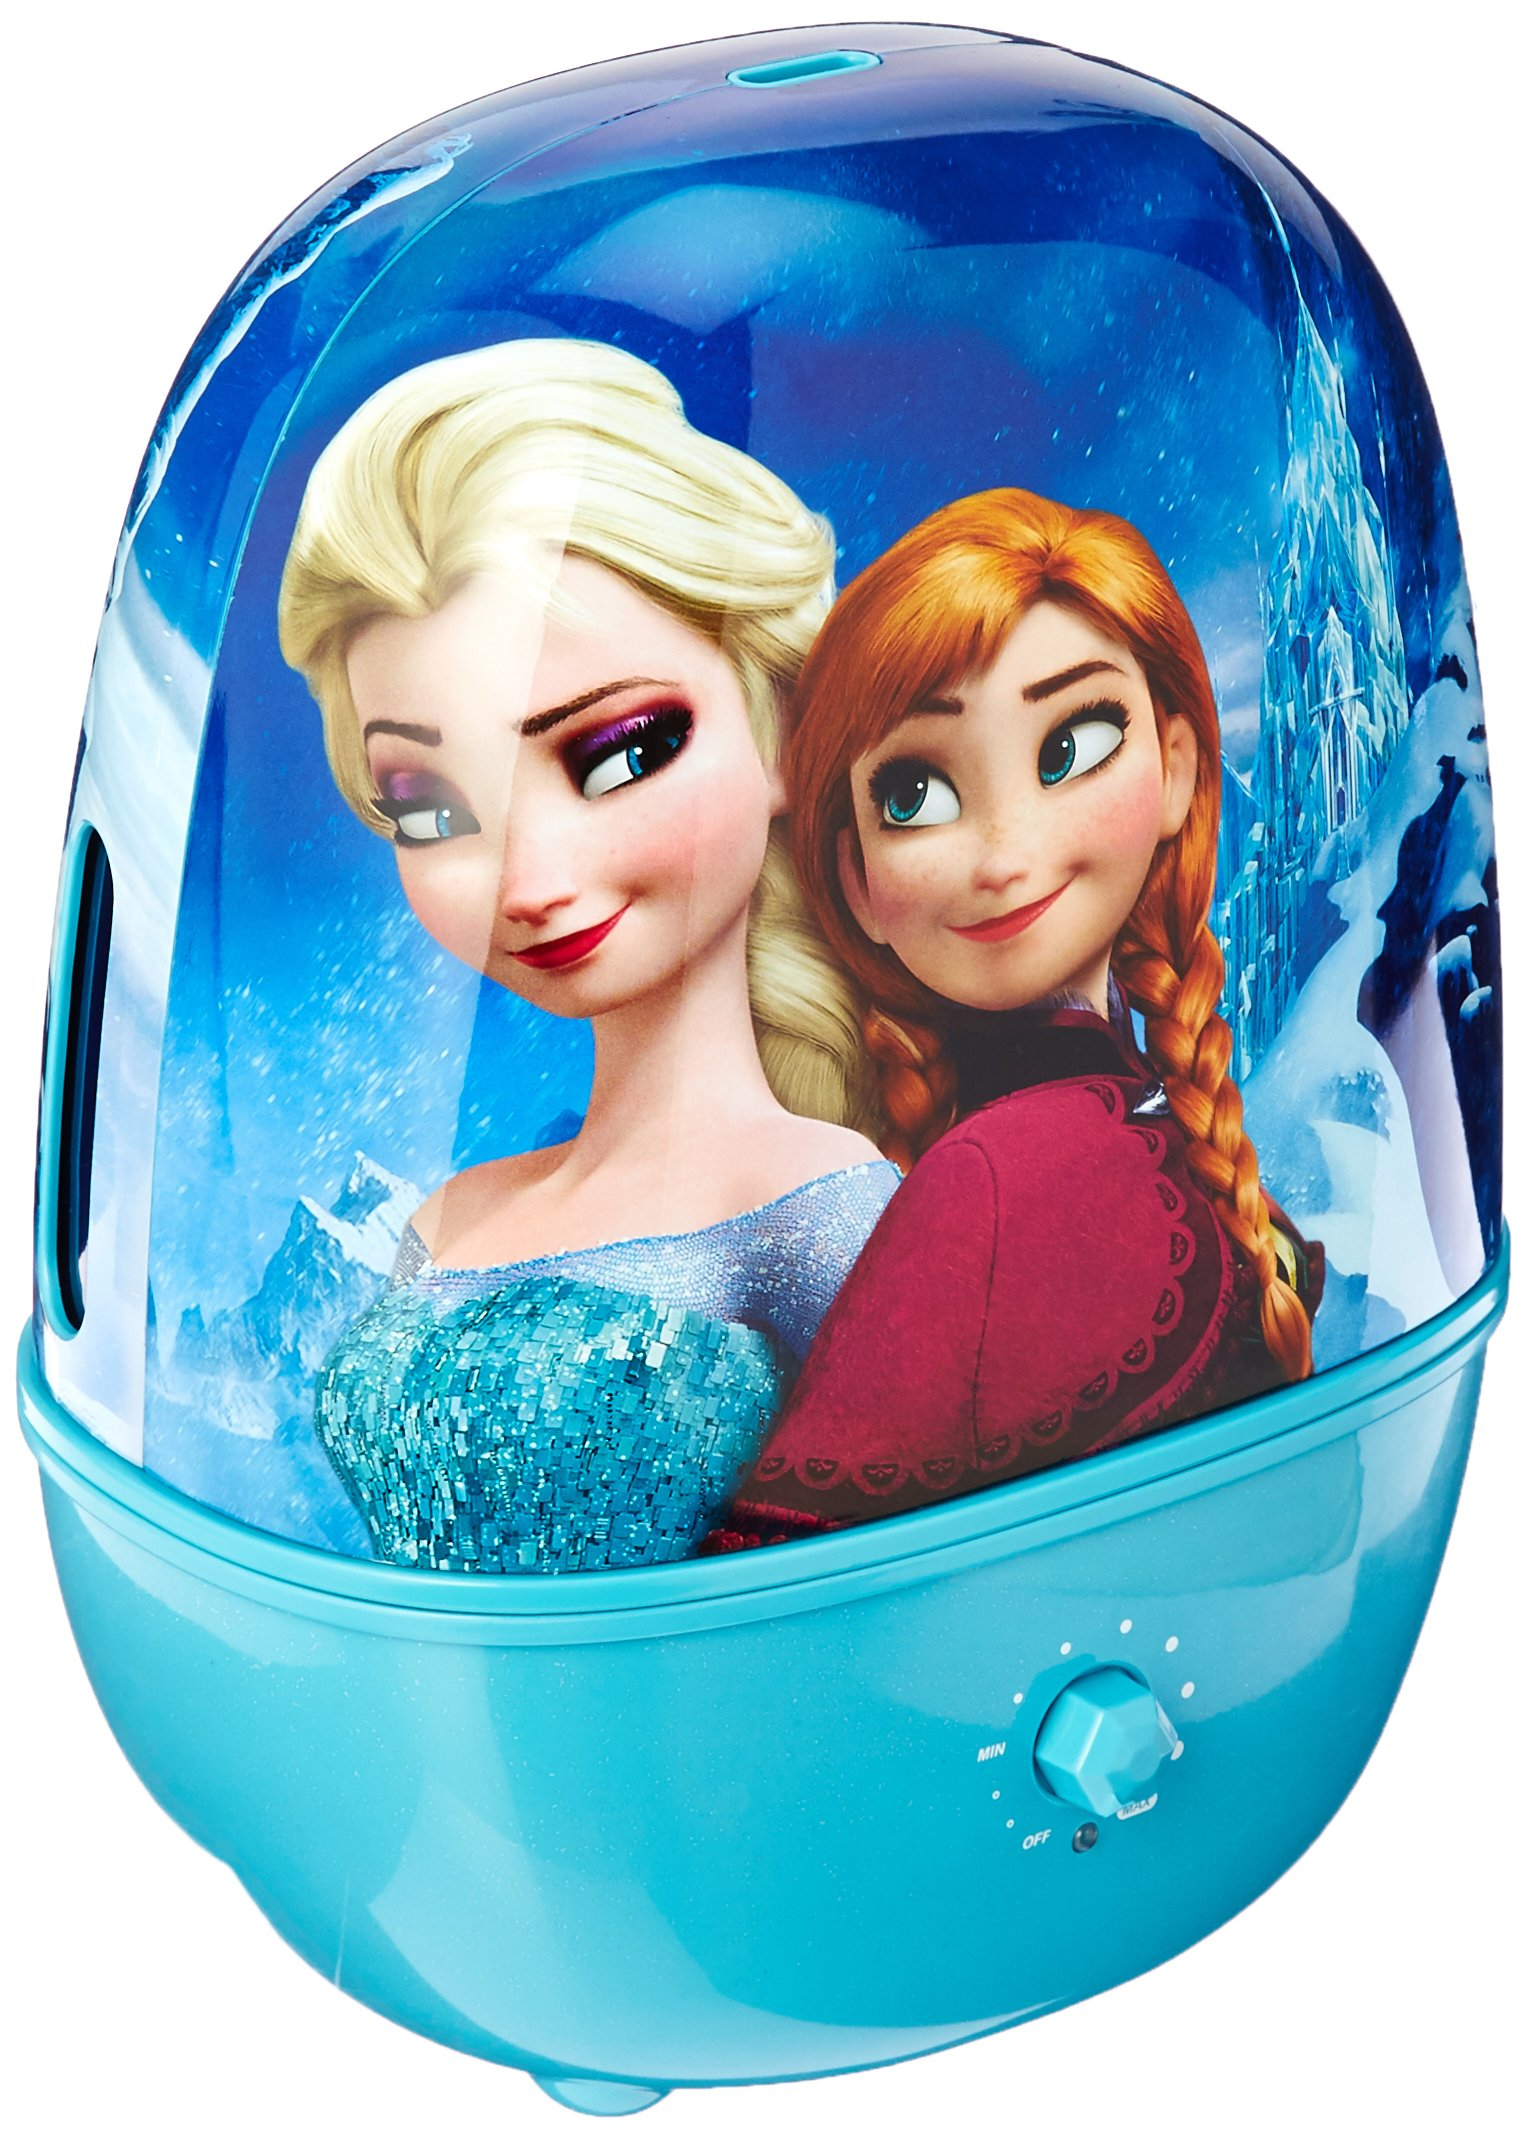 Disney Frozen-Elsa and Anna Capacity Ultrasonic Cool Mist Humidifier, 1 gallon